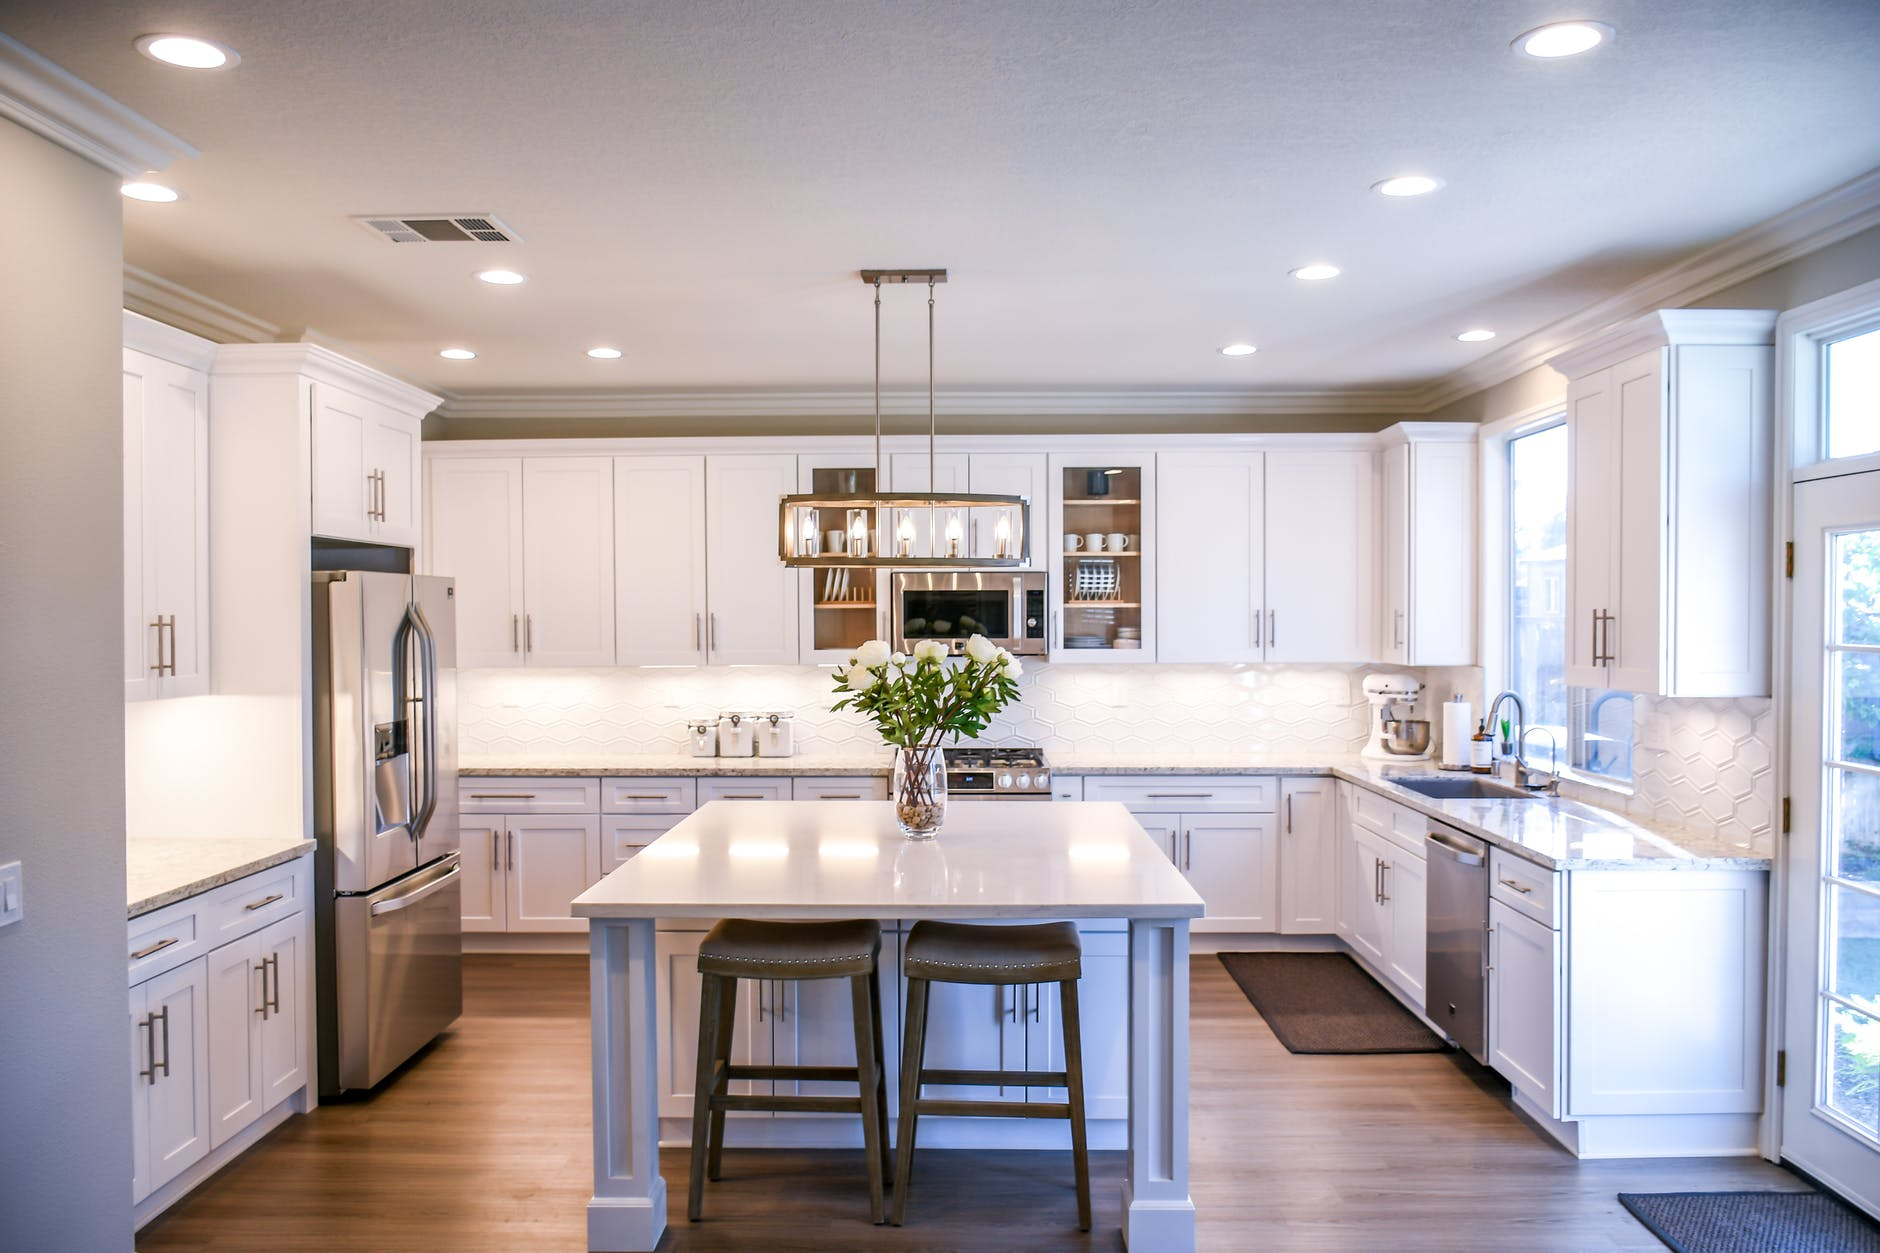 A huge kitchen with an Island that has two stools at the end. There are flowers placed on the Island. The whole kitchen has a clean white effect.